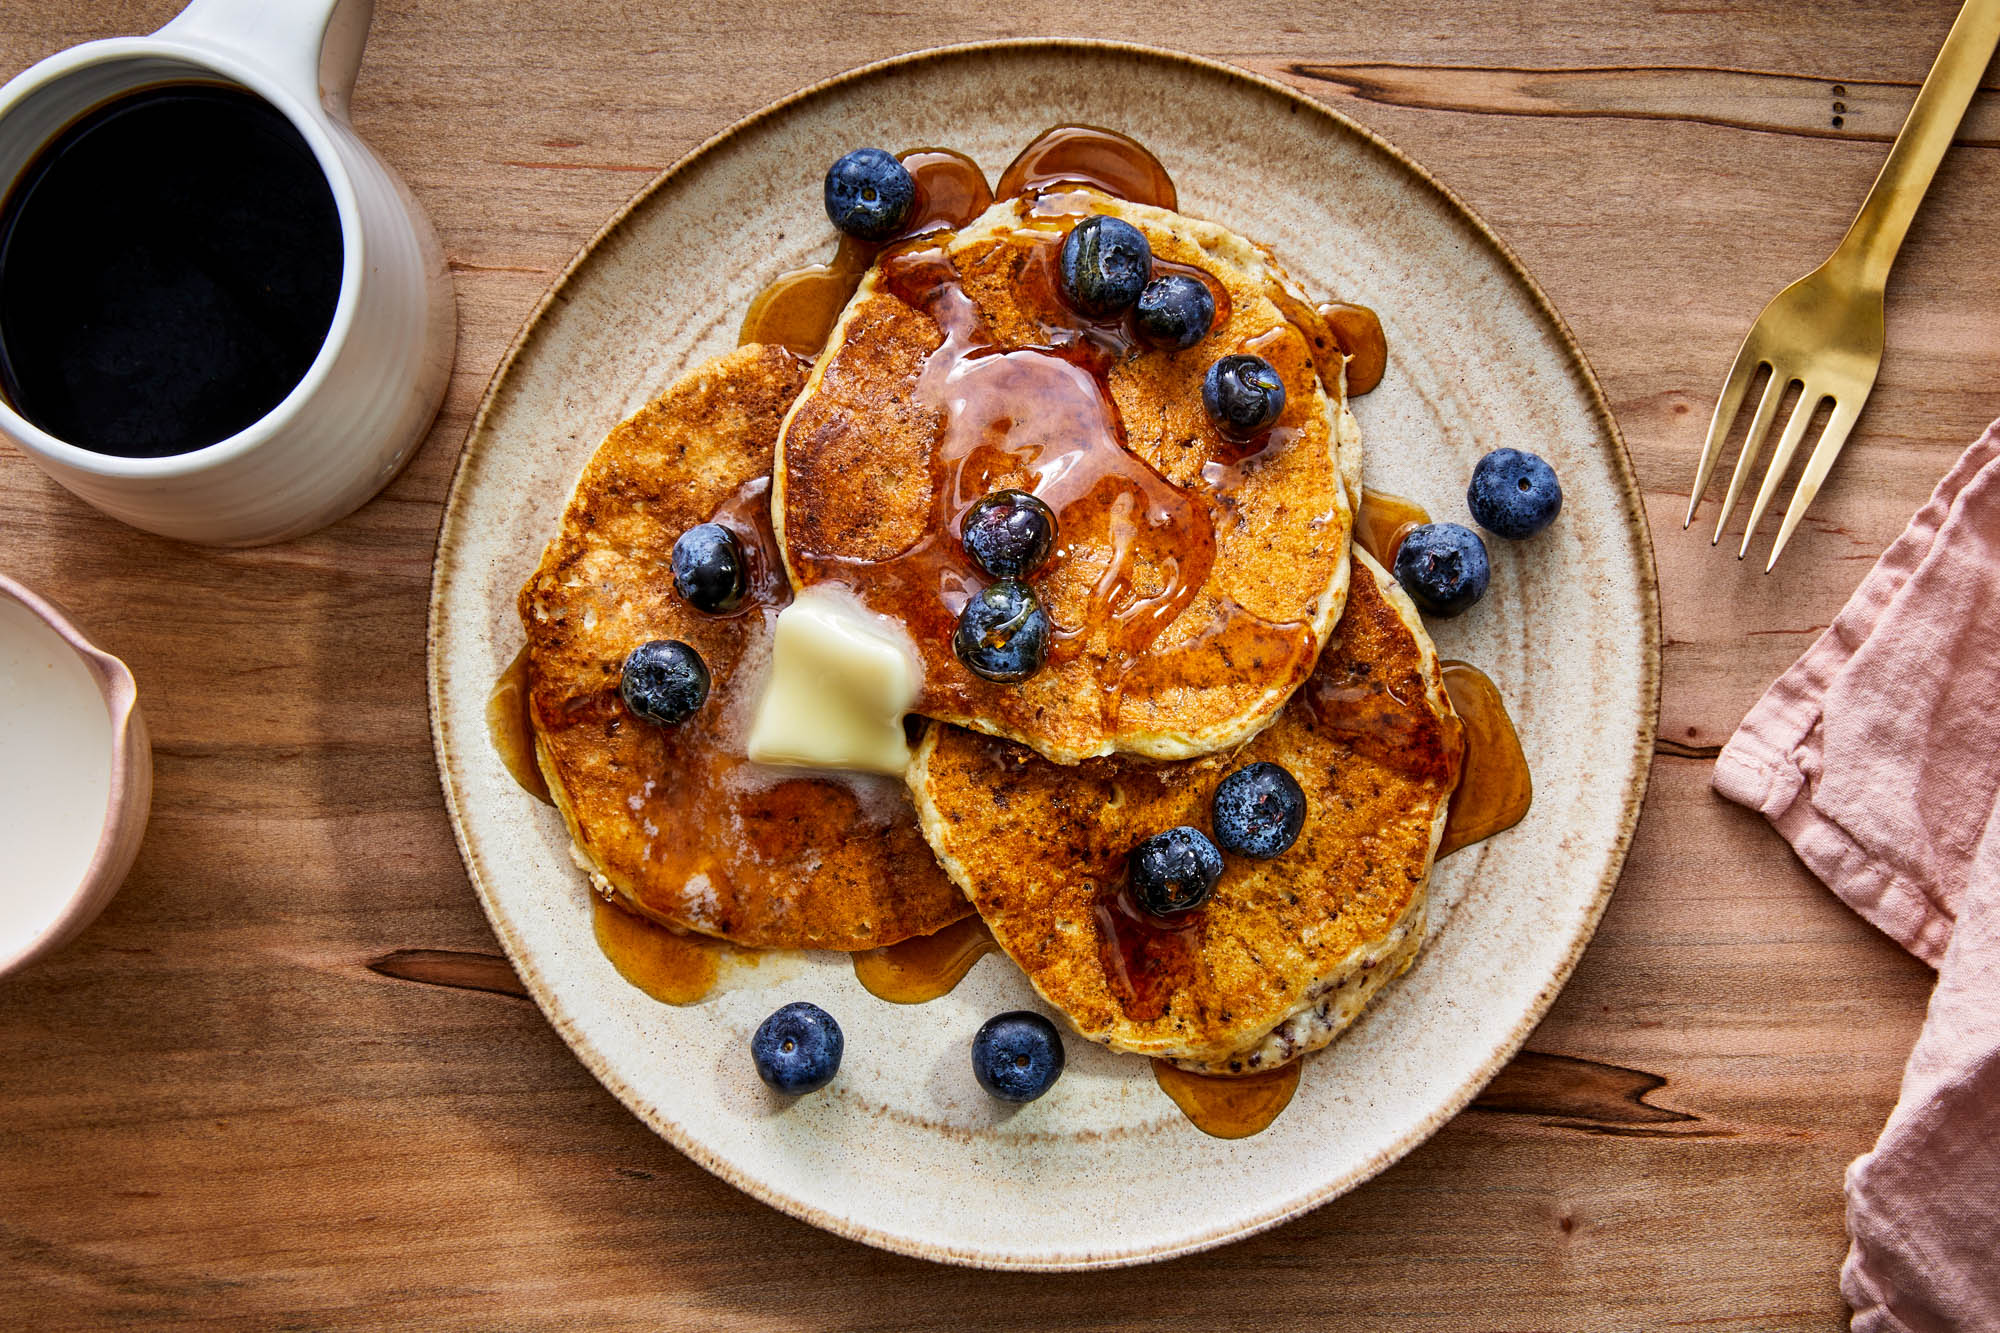 Breakfast scene with quinoa pancakes, blueberries, syrup